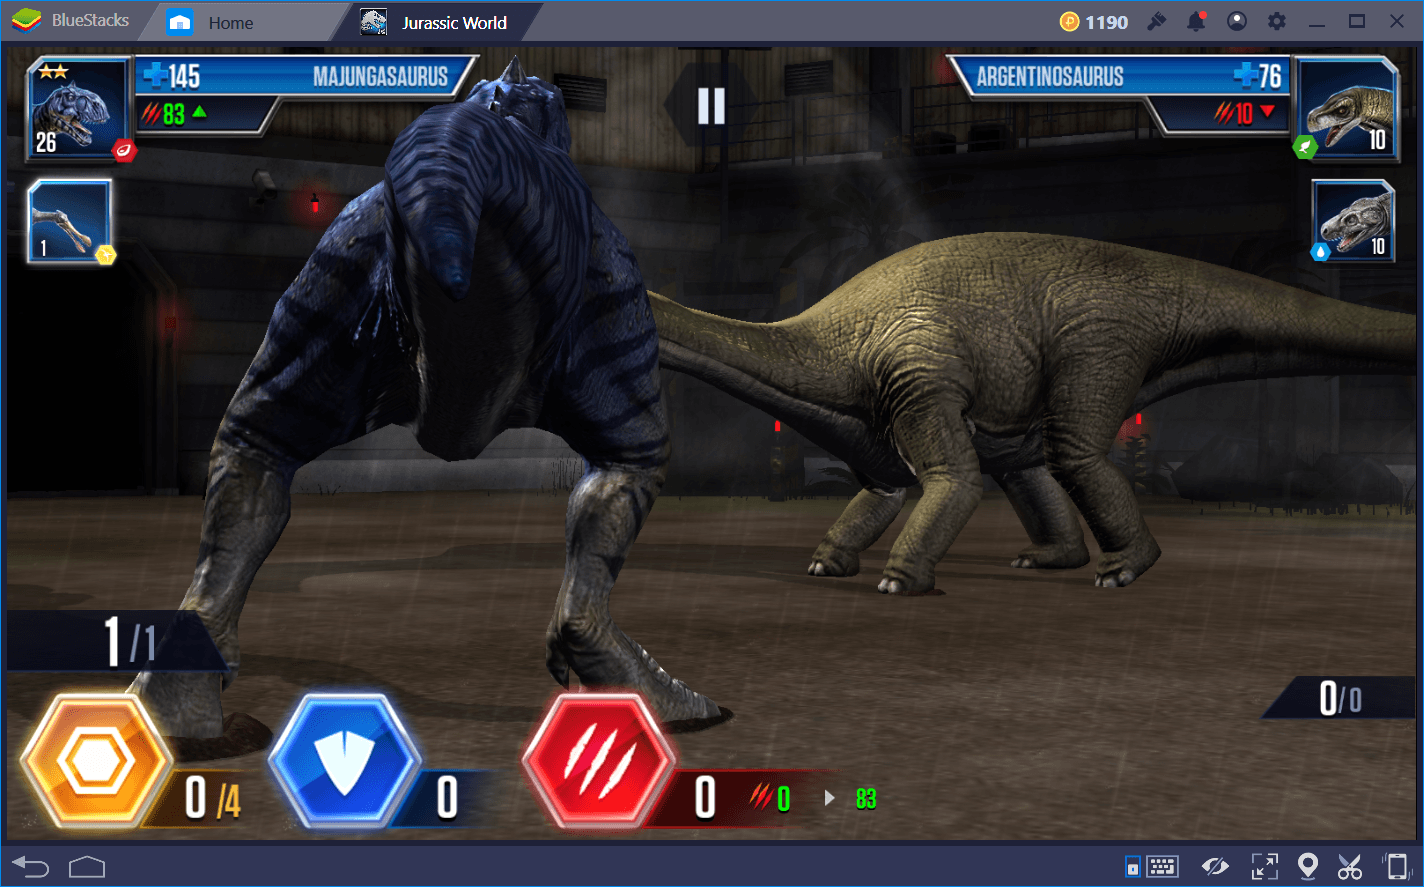 Battle and Duel Strategy Guide for Jurassic World: The Game